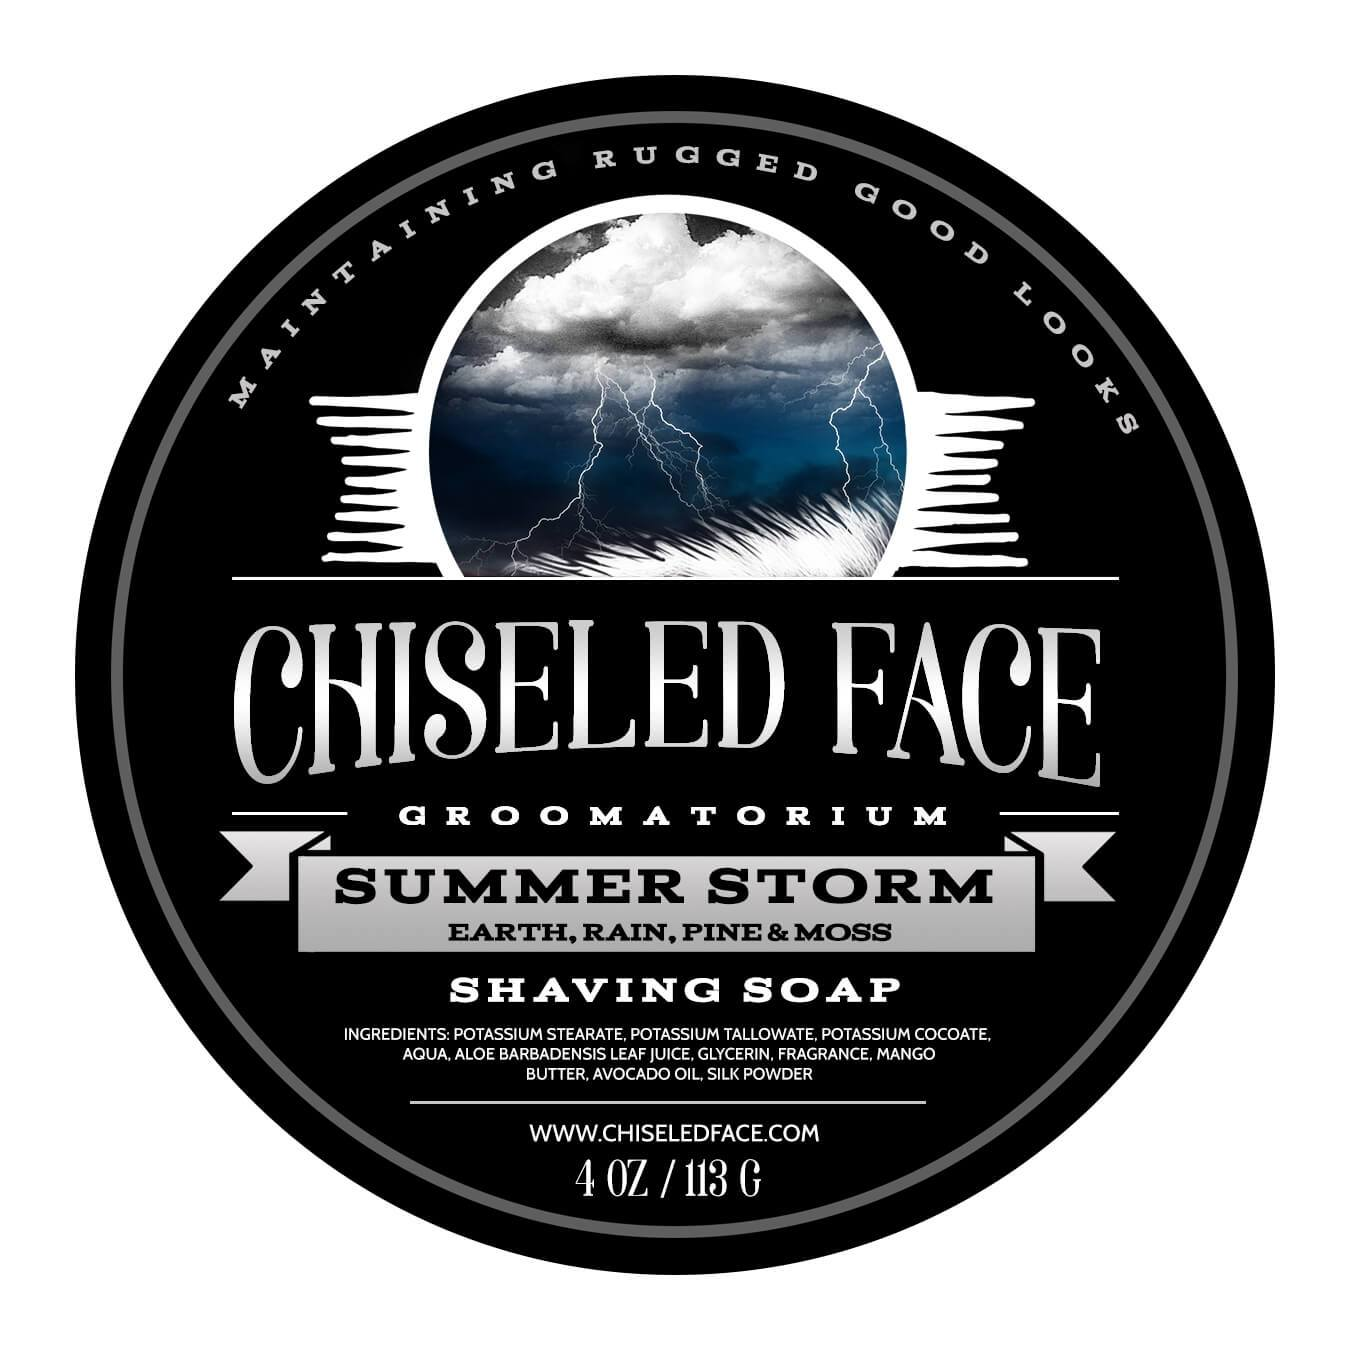 Chiseled Face - Summer Storm - Soap image